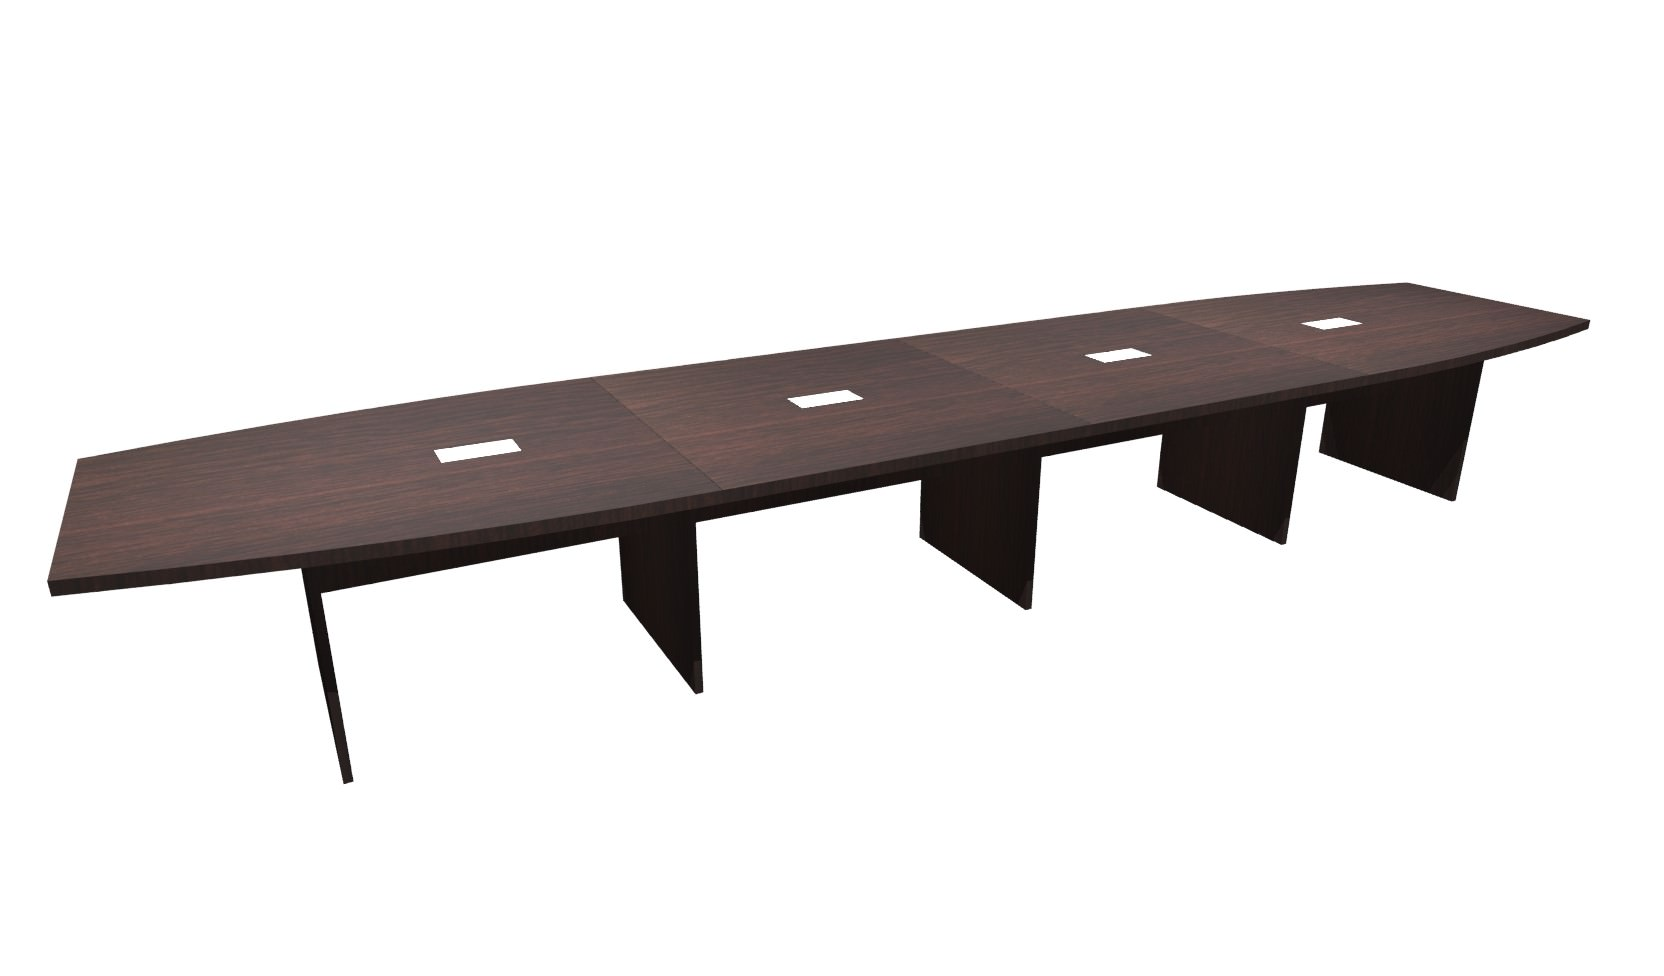 FT Espresso Boat Shaped Conference Table - Espresso conference table